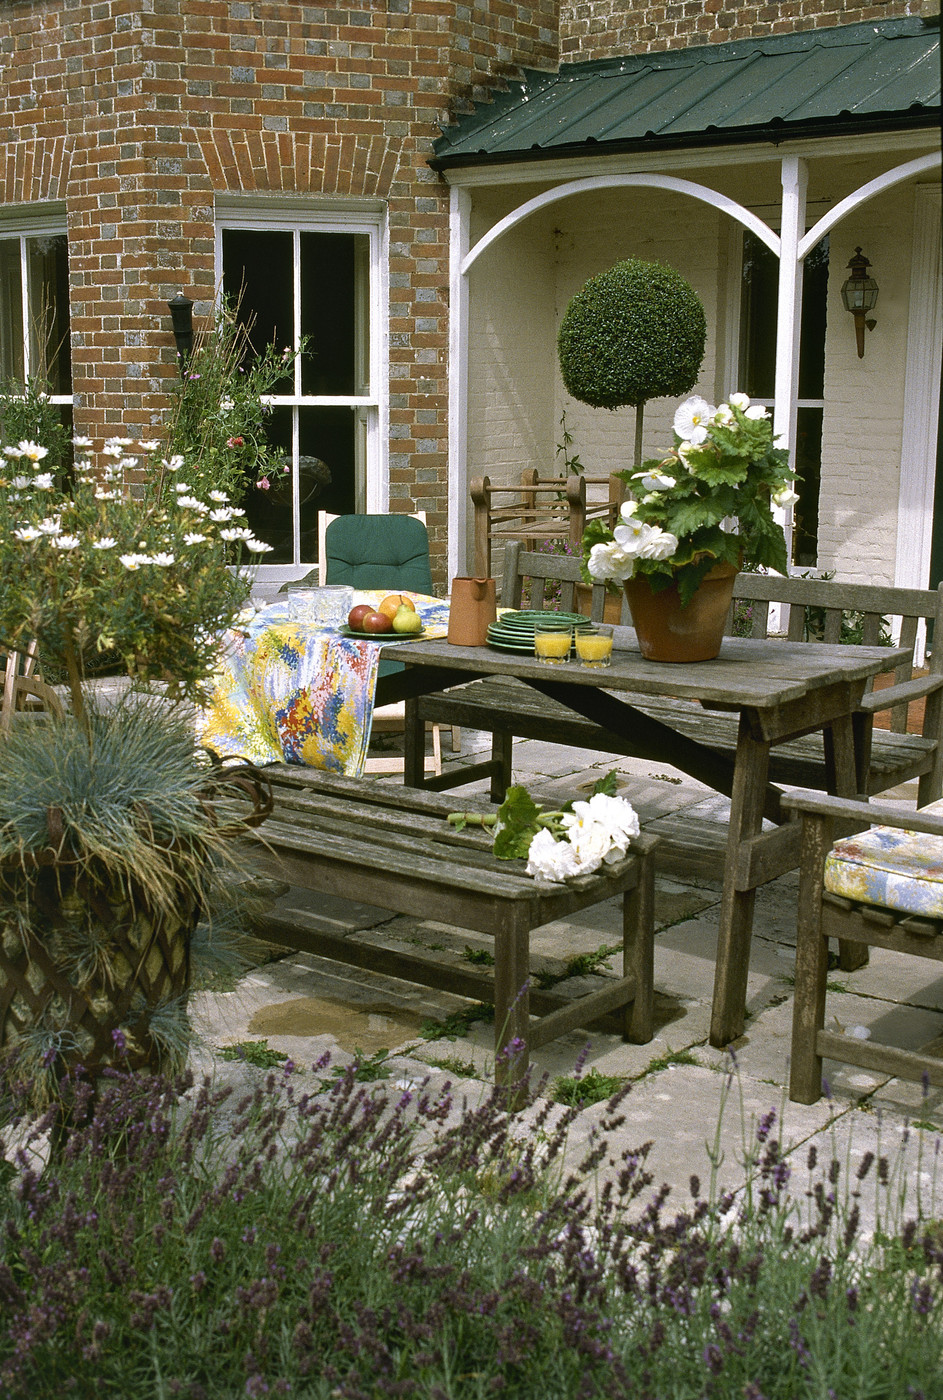 Country Patio - Outdoor Patio Design Ideas - Lonny on Country Patio Ideas id=94679